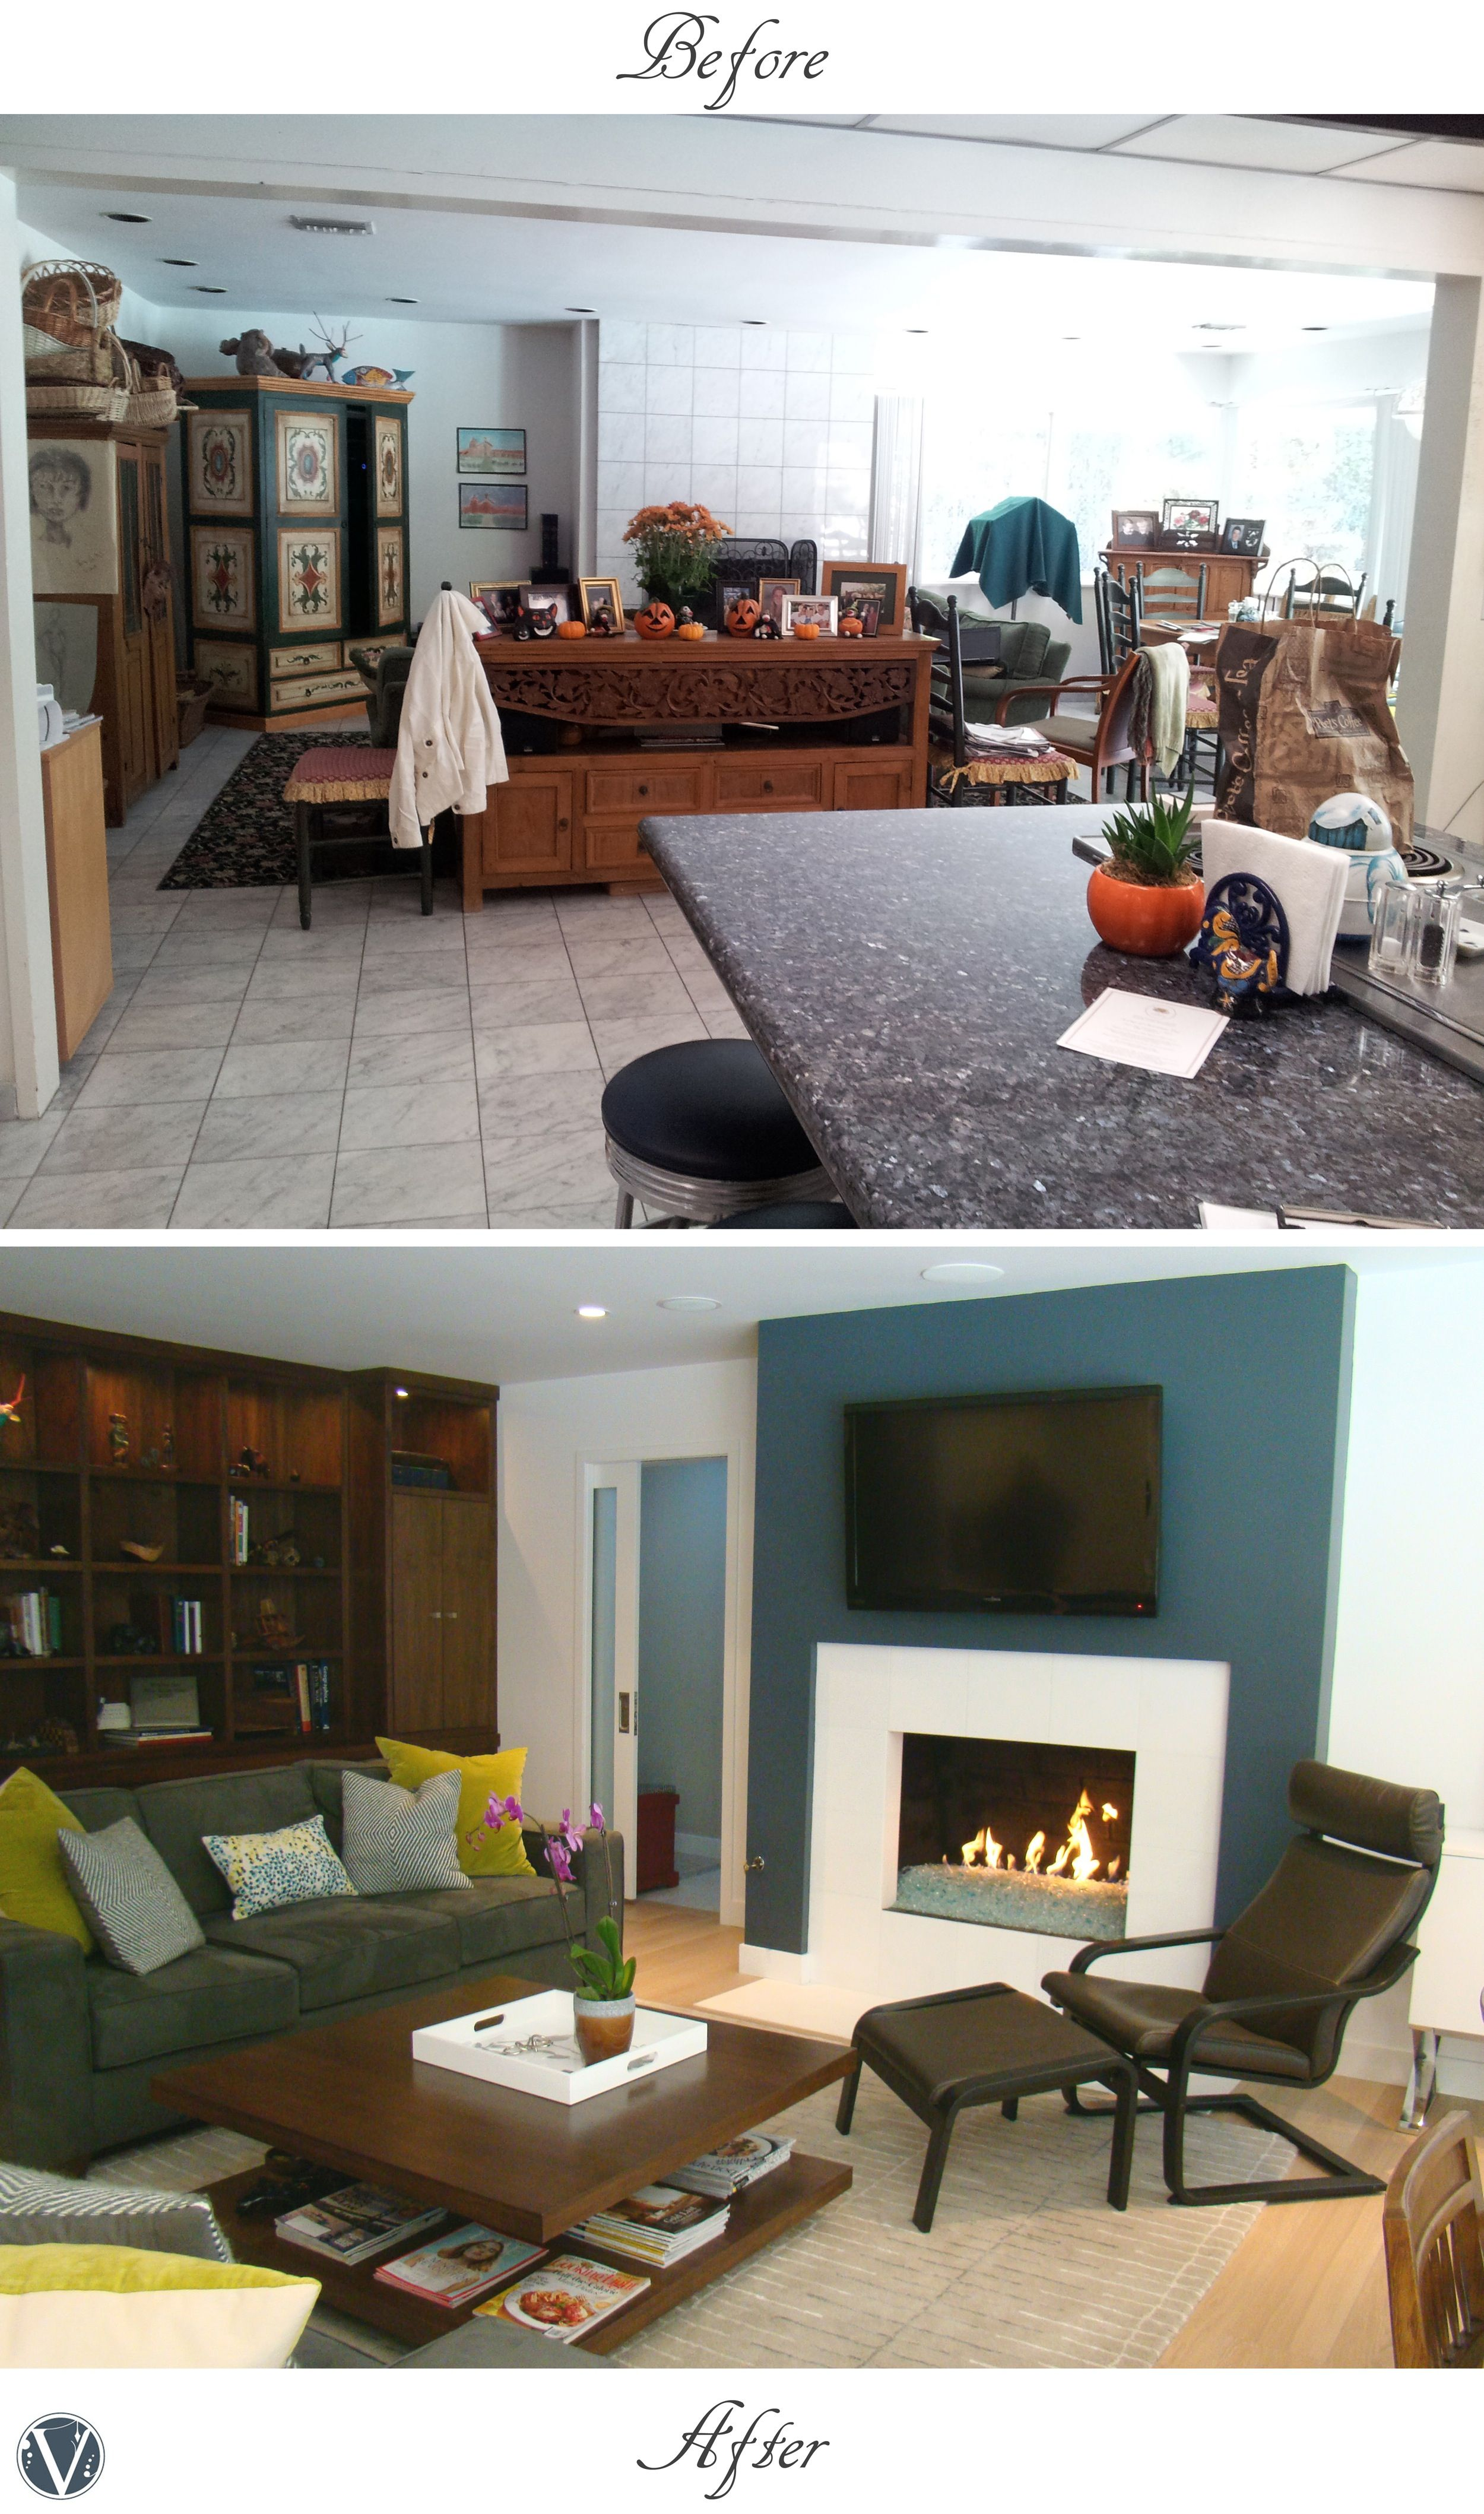 Living Room Renovation Before And After modern living room renovation. before and after. | virginia b